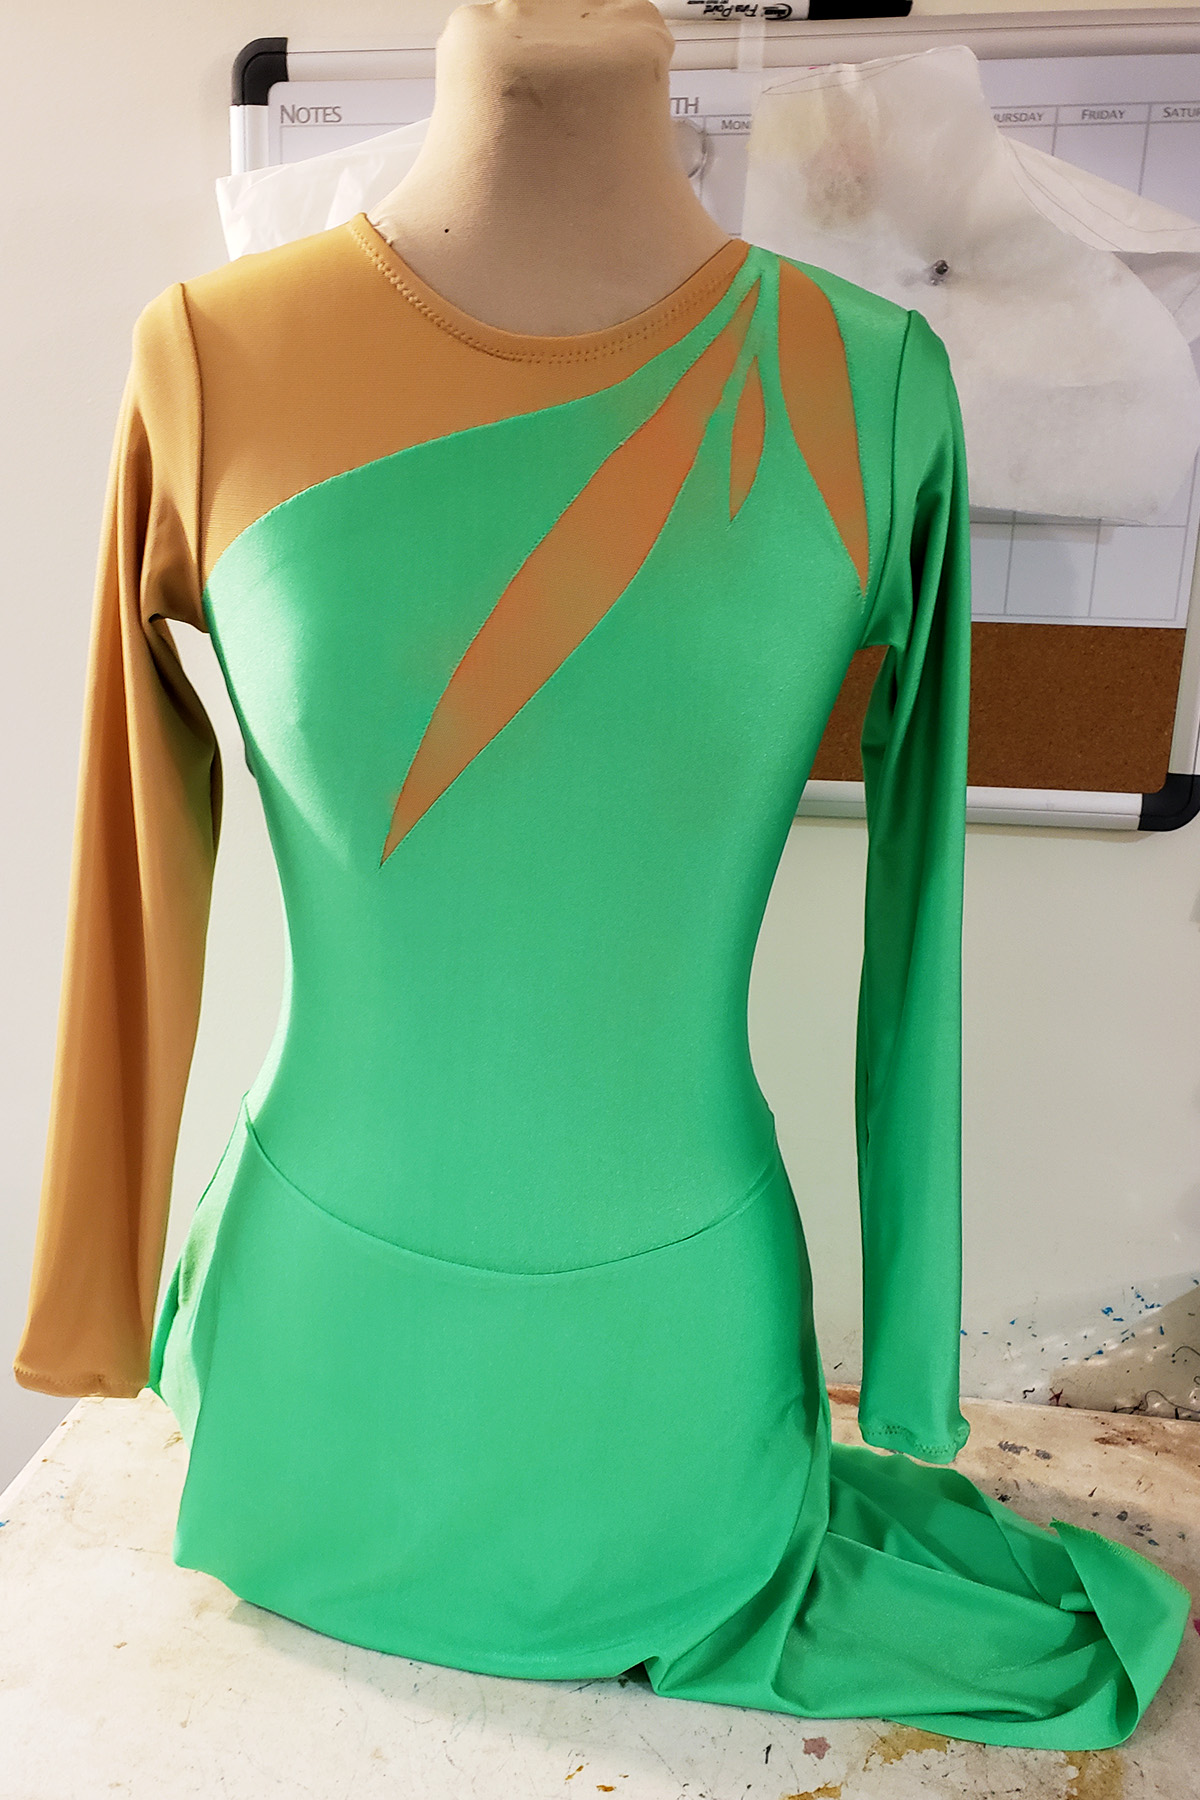 Front view of a basic green figure skating dress on a dress form.